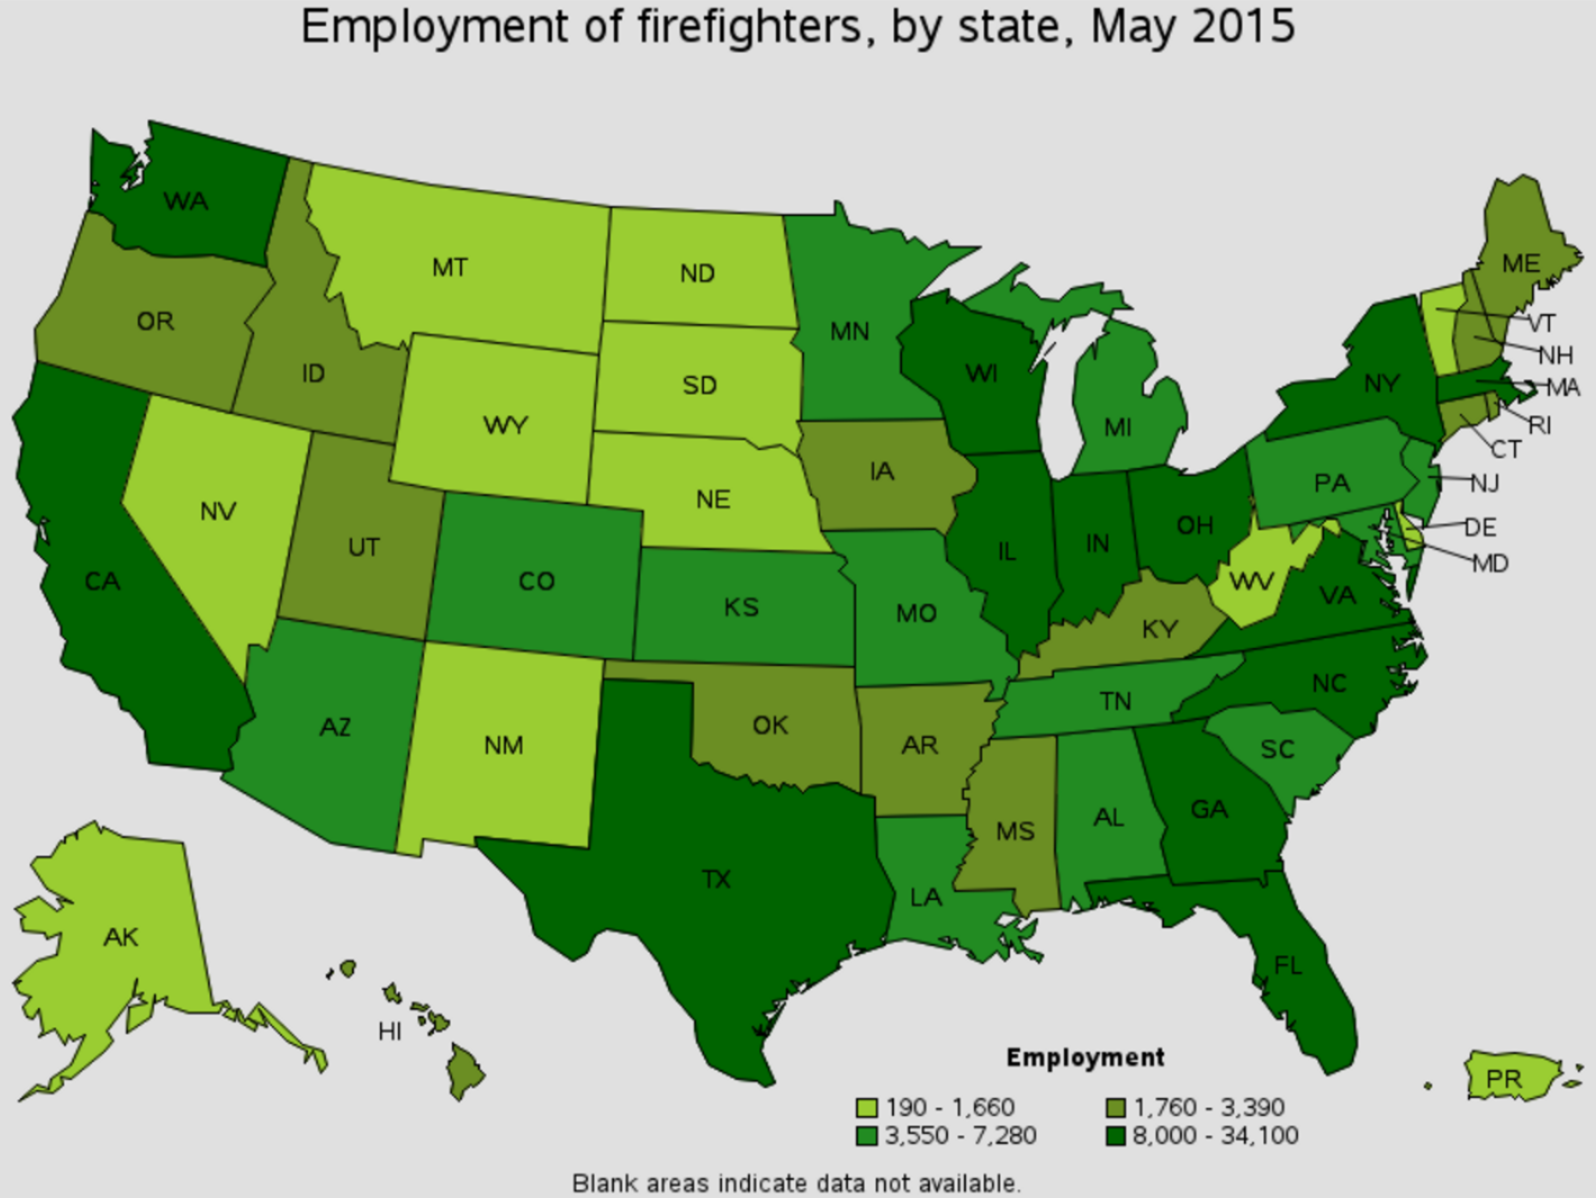 firefighter job outlook by state Wymore Nebraska